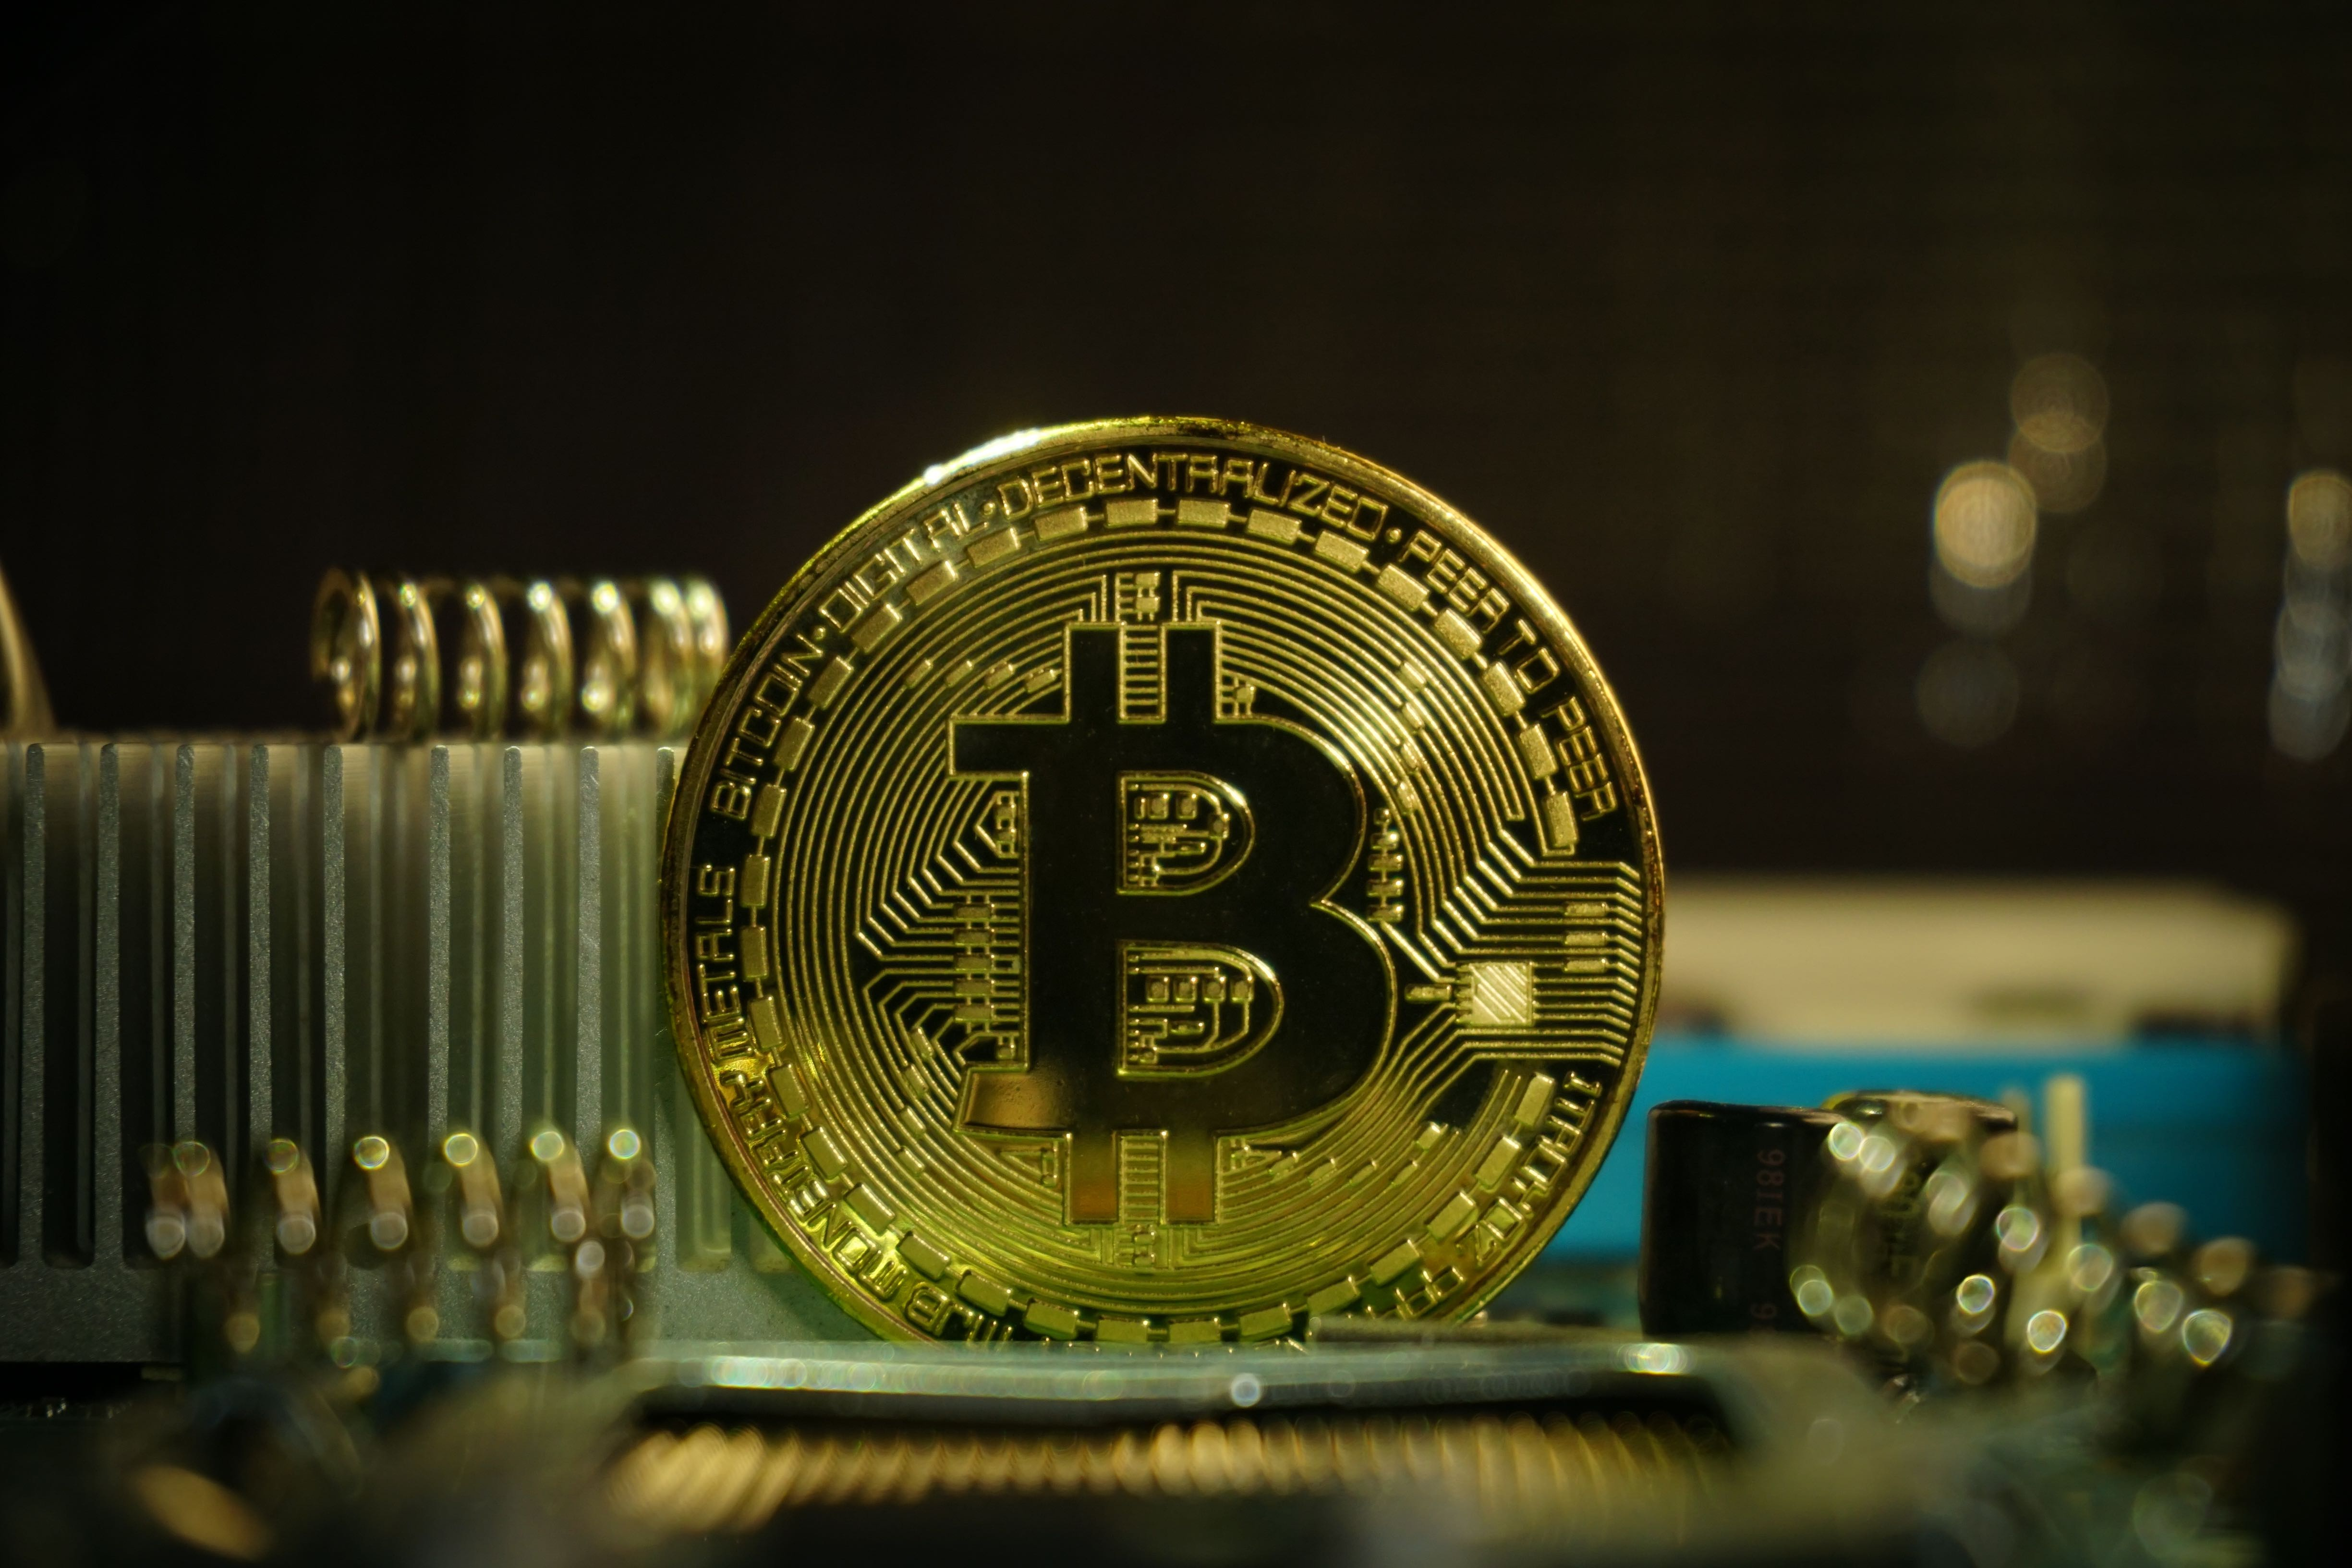 Bitcoin Price Ends November With Worst Monthly Decline in 7 Years